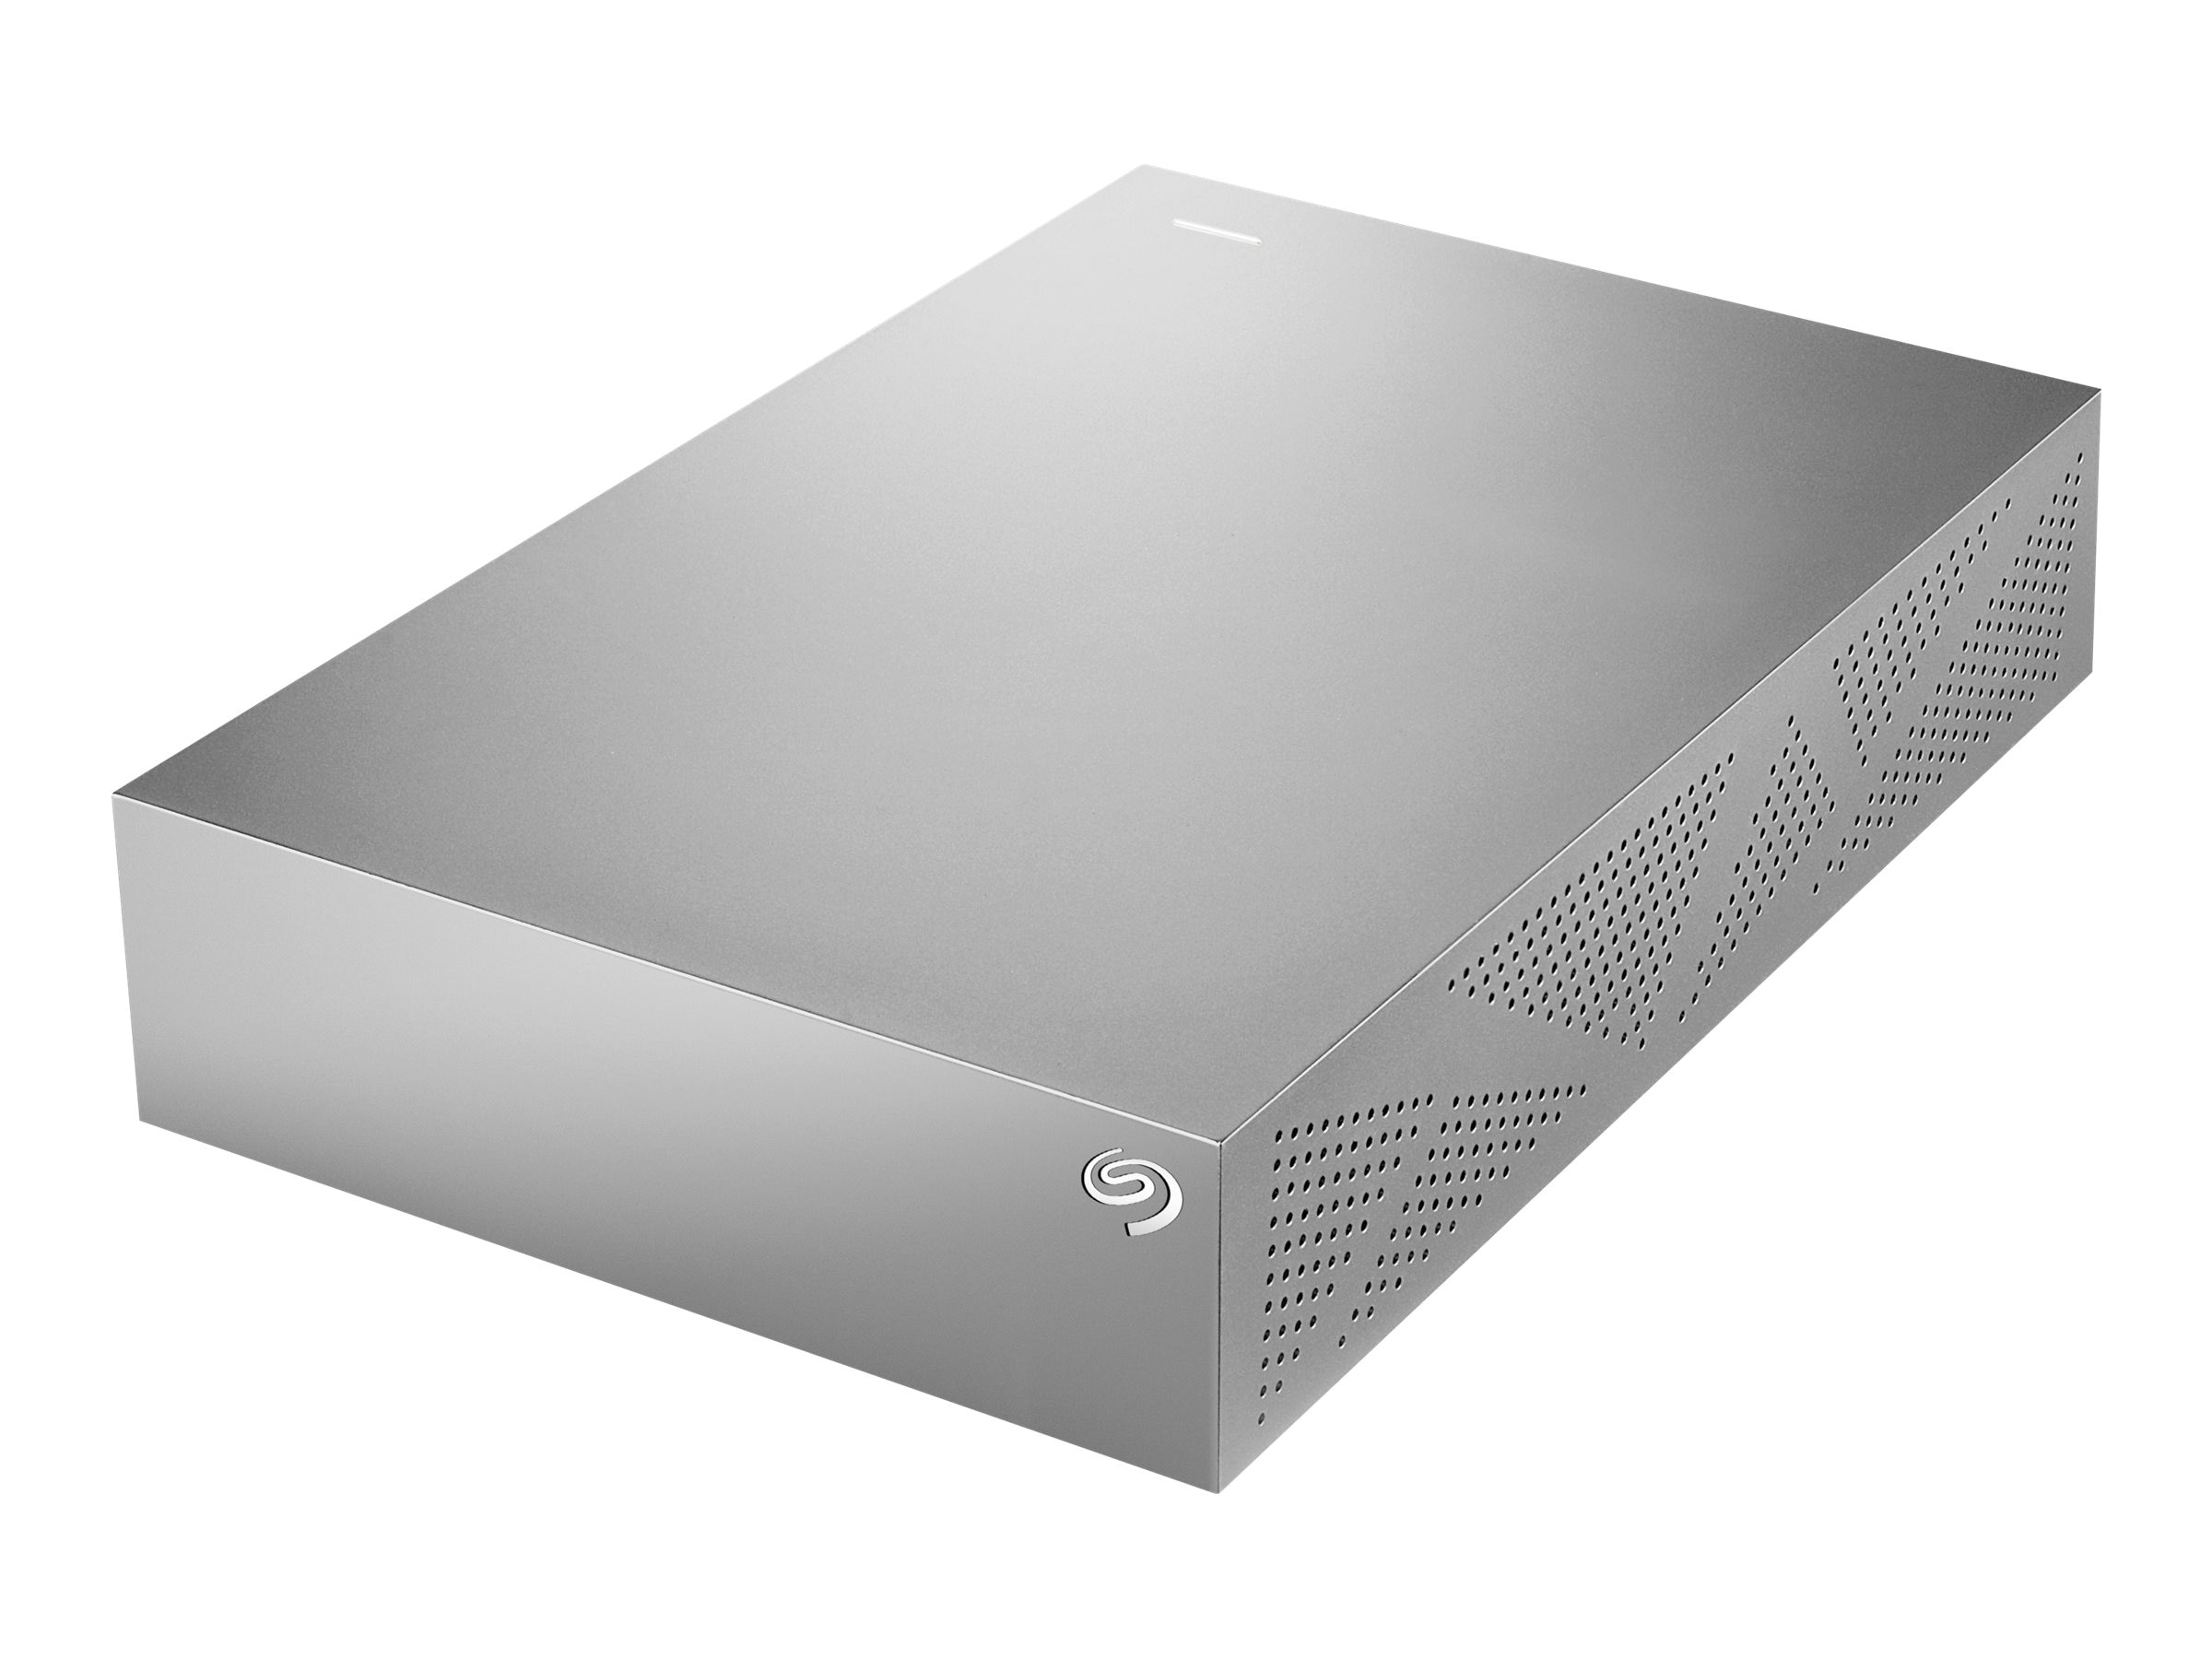 Seagate 4TB Backup Plus for Mac USB 3.0 3.5 Desktop Hard Drive - Titanium Silver, STDU4000100